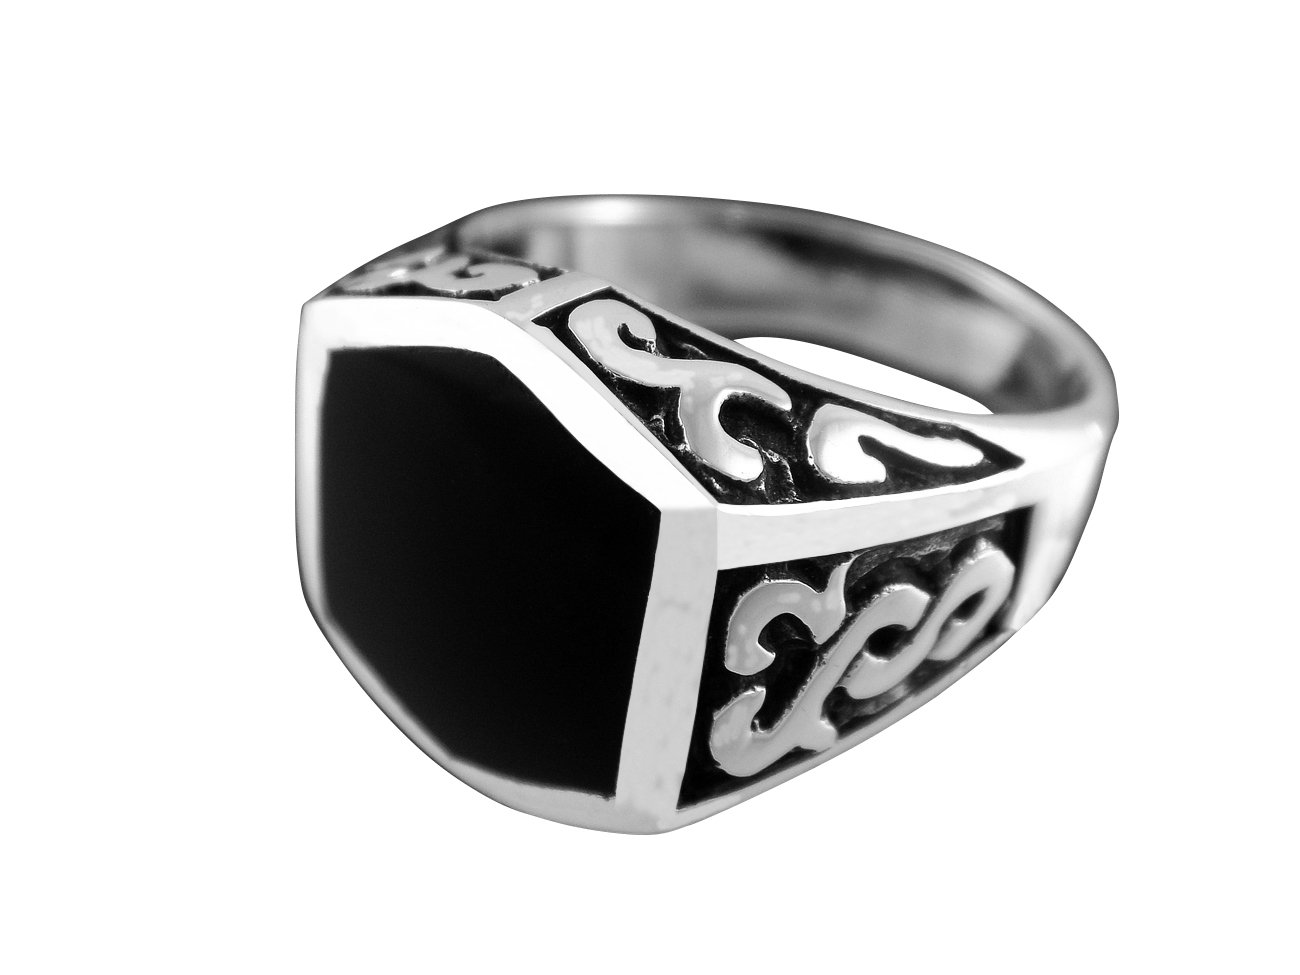 925 Sterling Silver Men's Black Onyx Celtic Irish Oxidized Sides Ring 12g